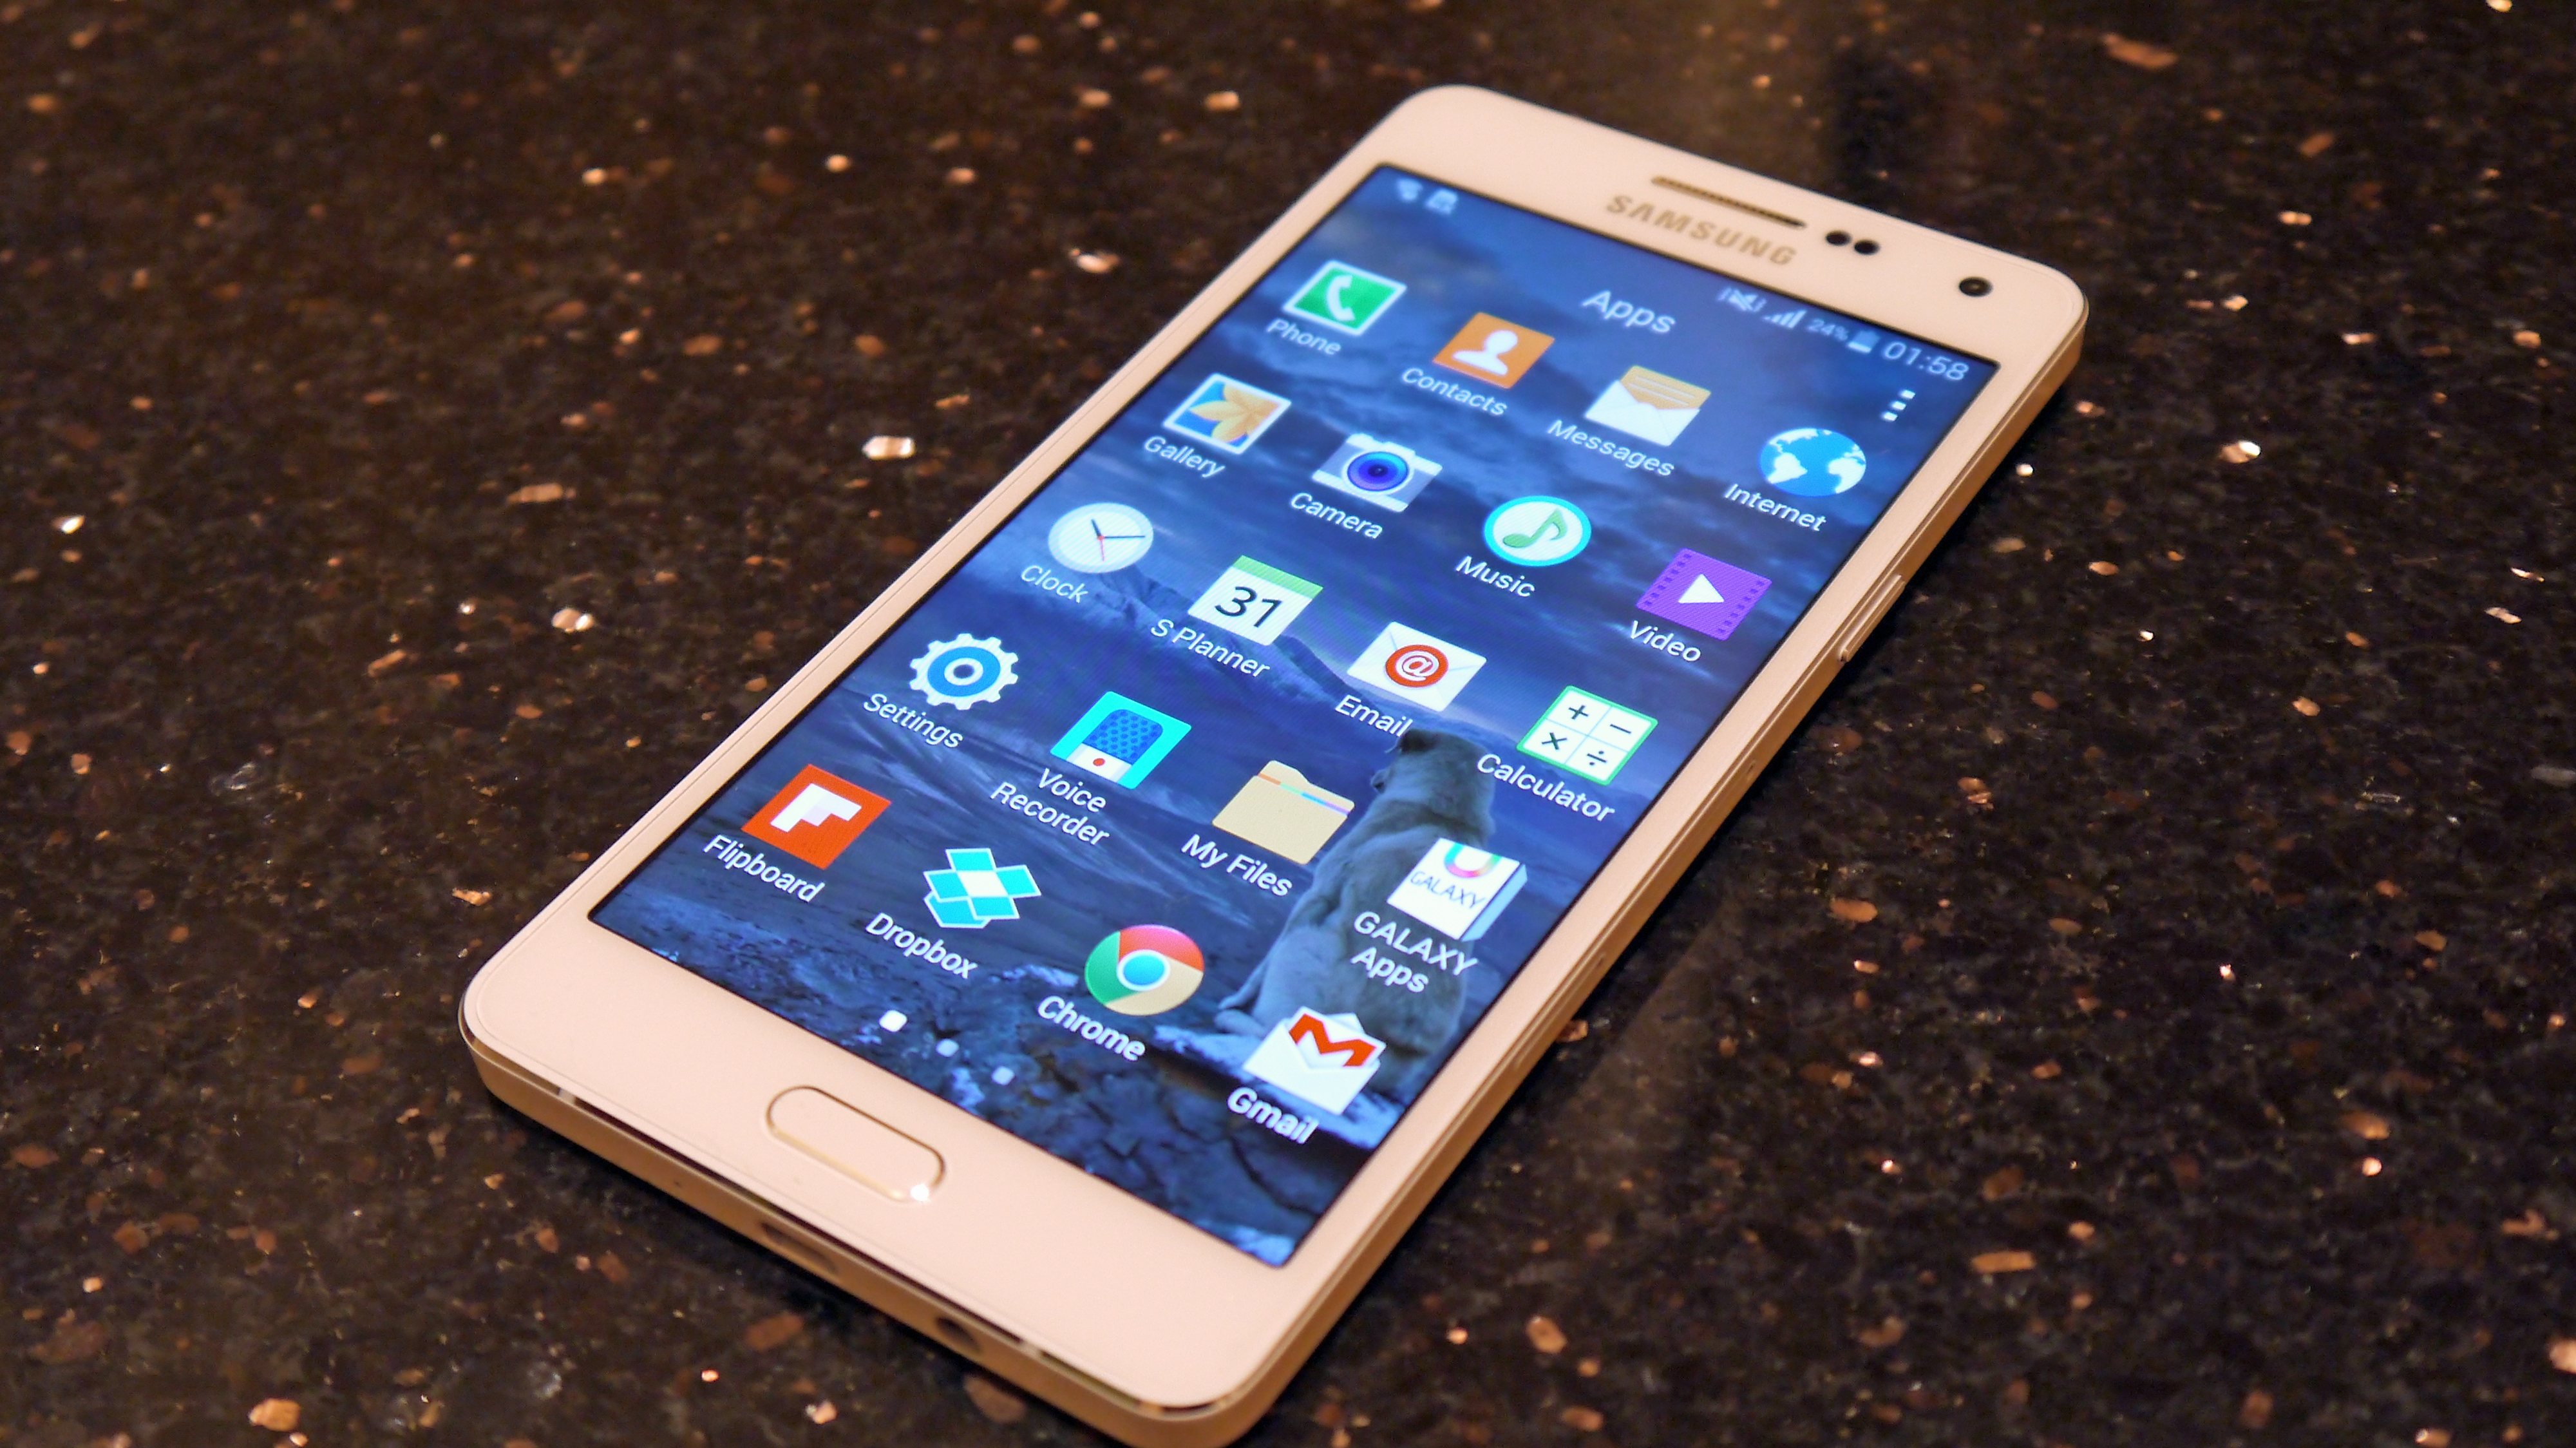 Which phone is better now to buy Samsung GALAXY A5 or iPhone 5s